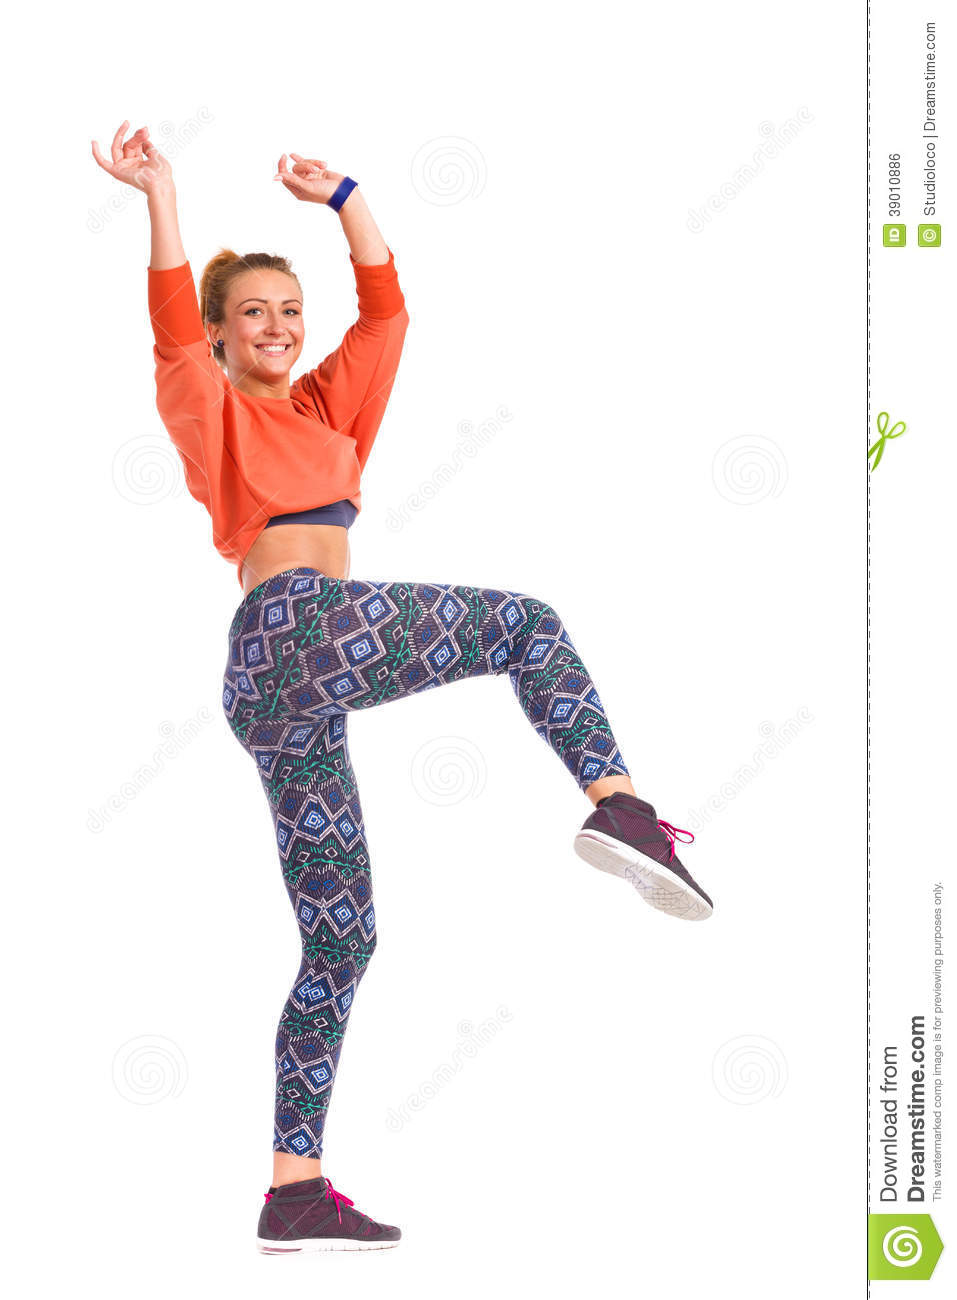 Image Result For Royalty Free Music Zumba